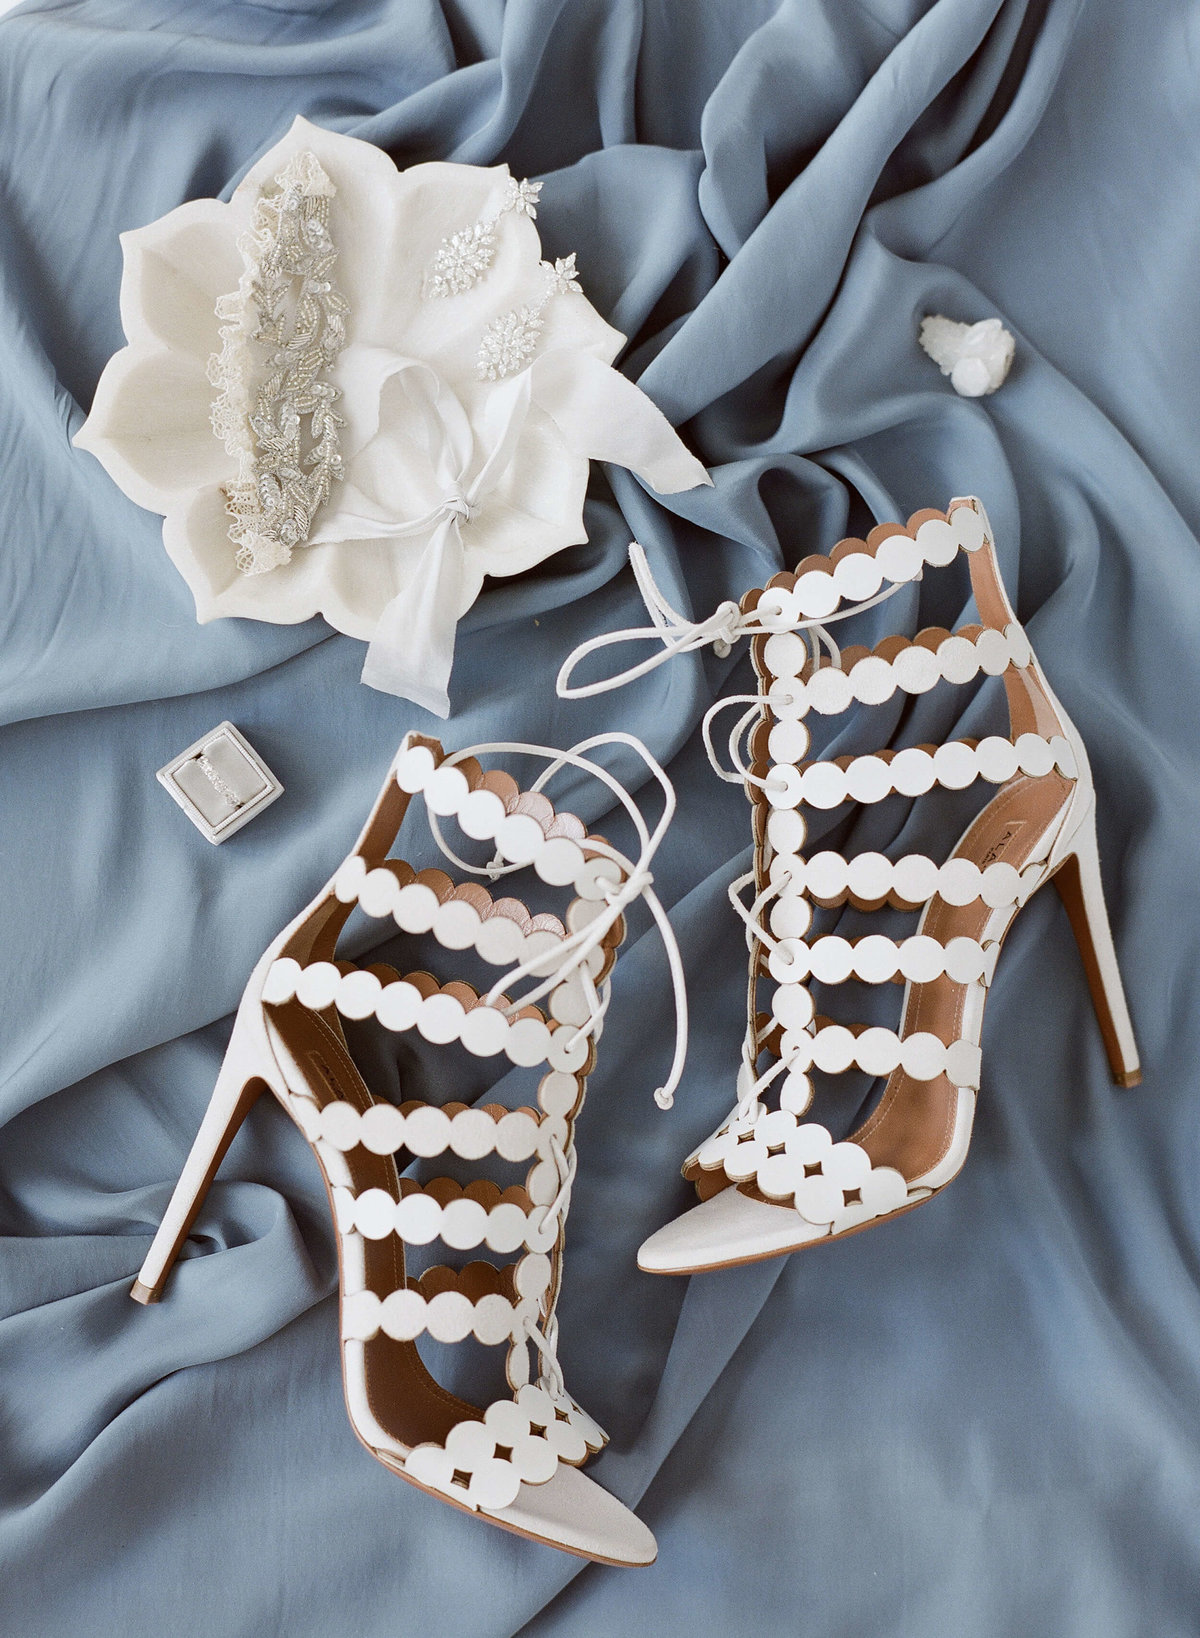 51-KTMerry-weddings-flatlay-white-shoes